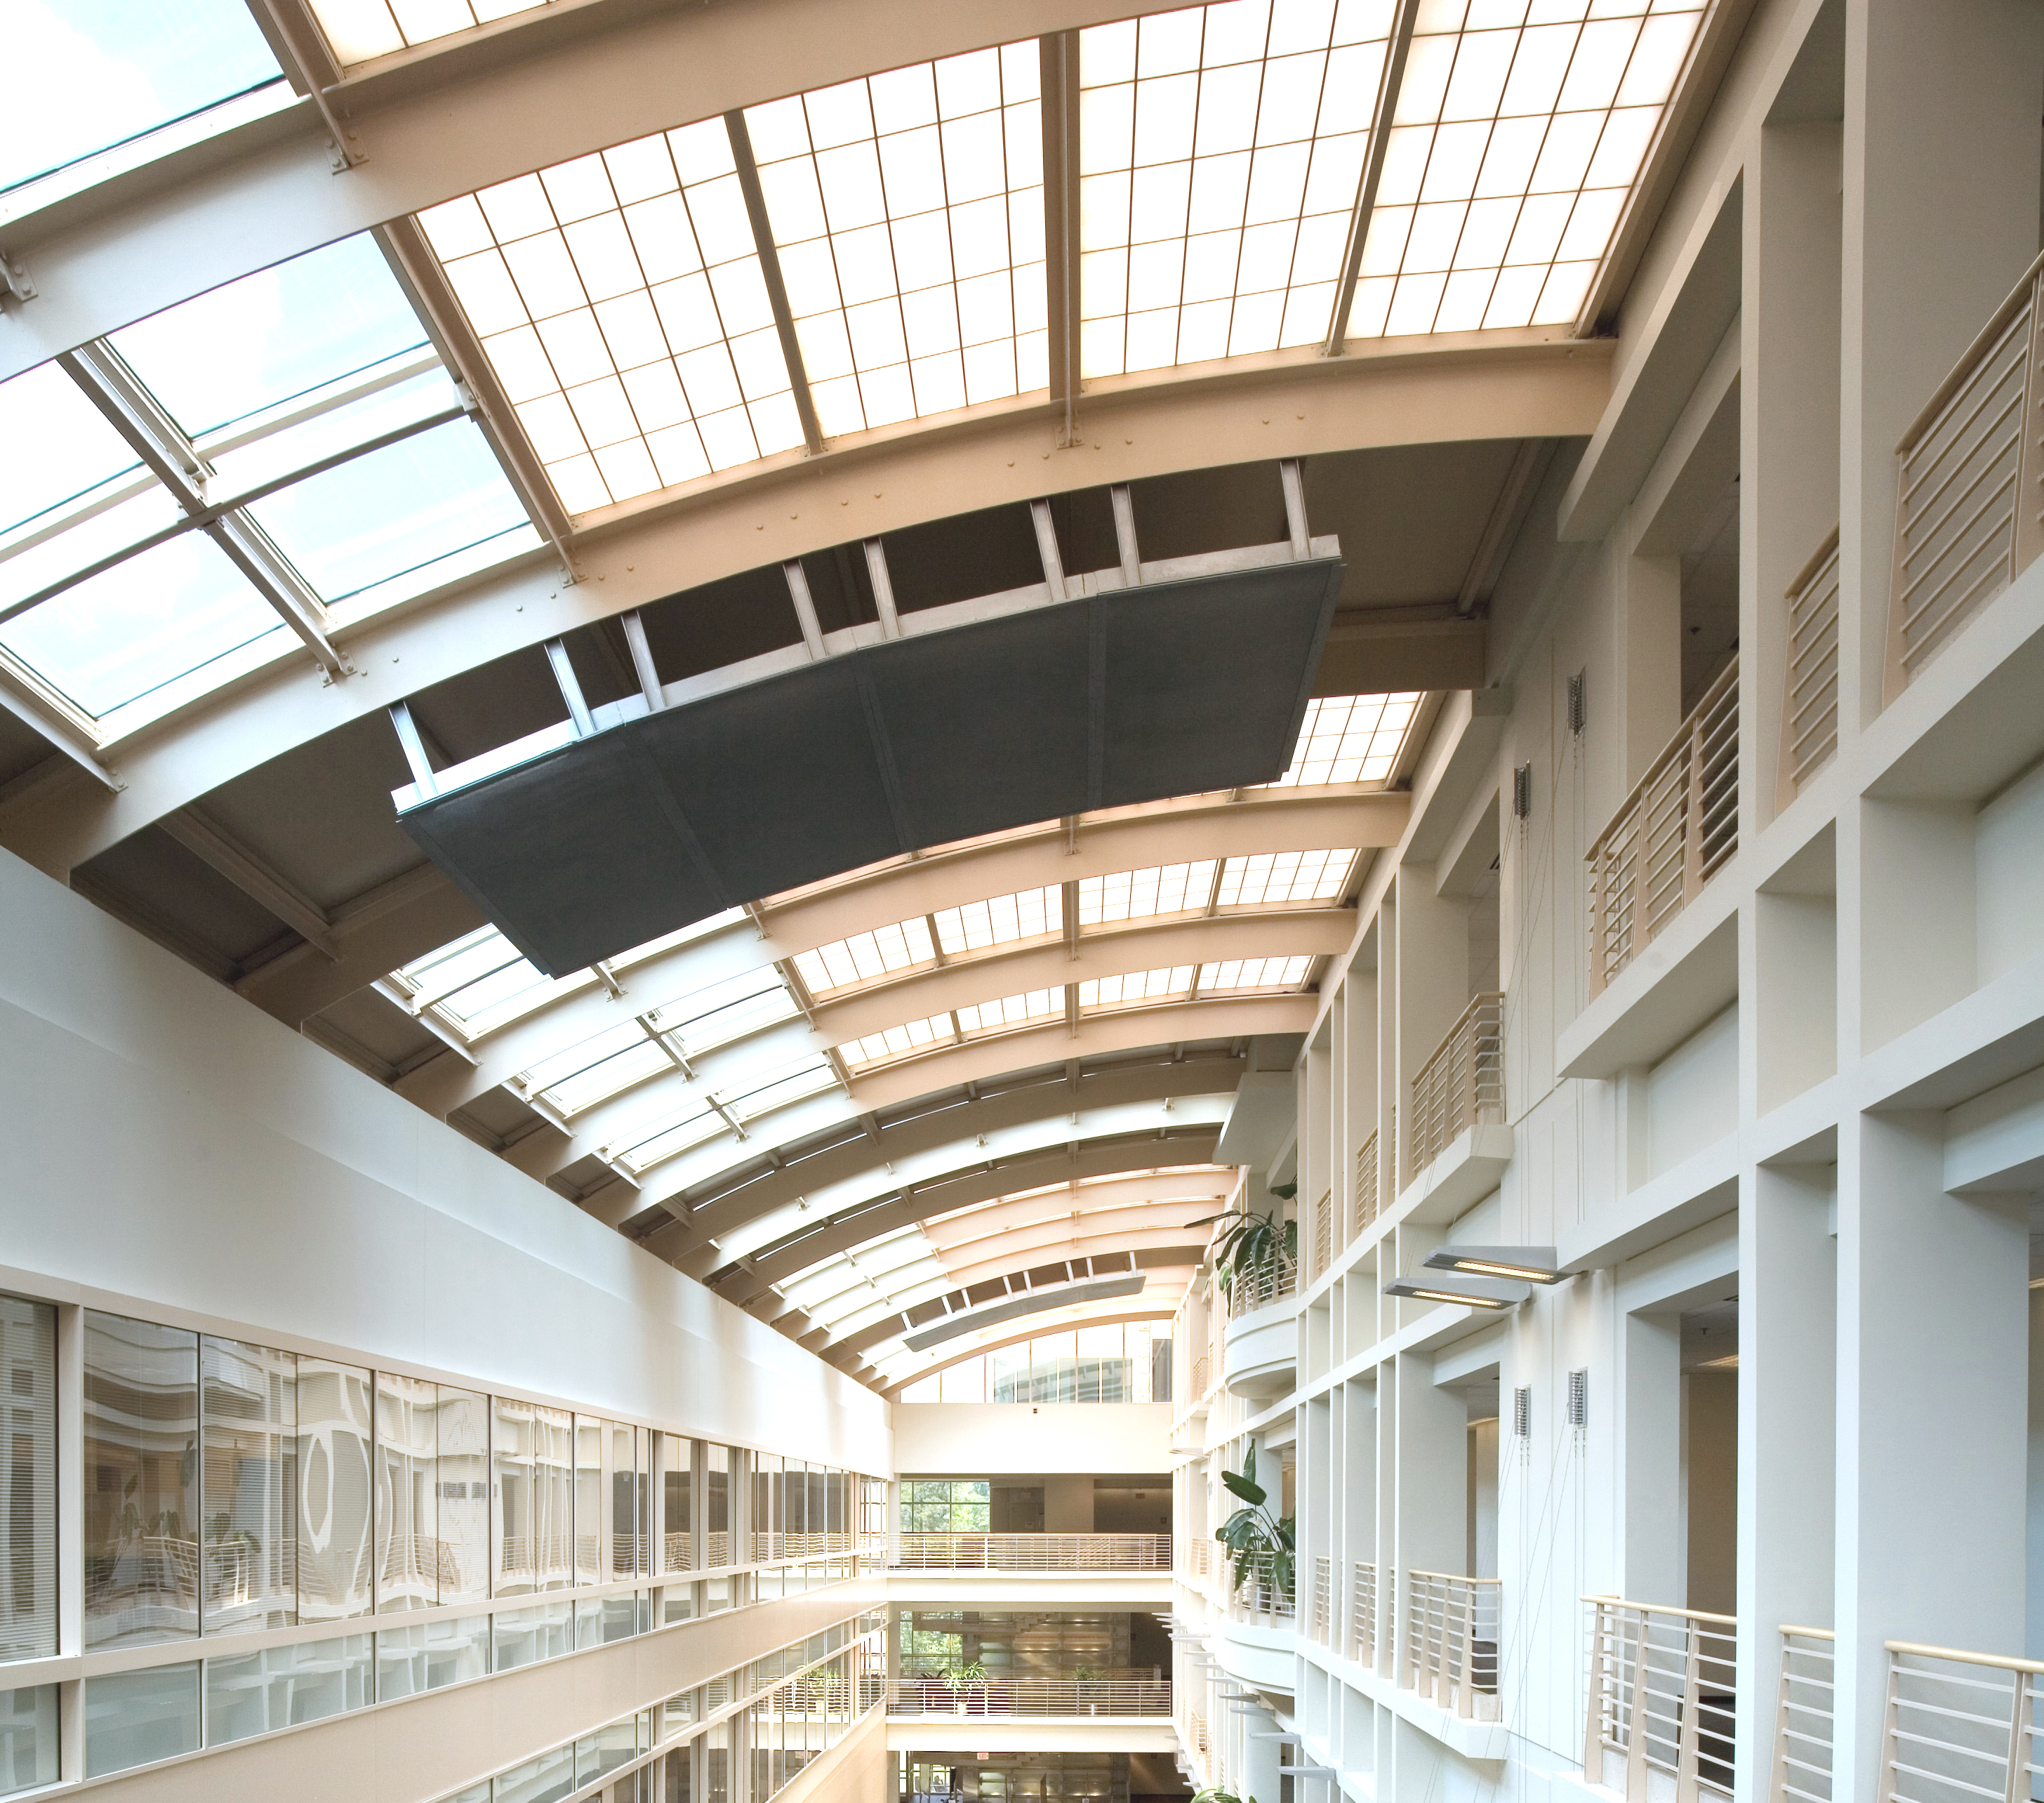 Skylights and balconies inside a bright building at the EPA in RTP